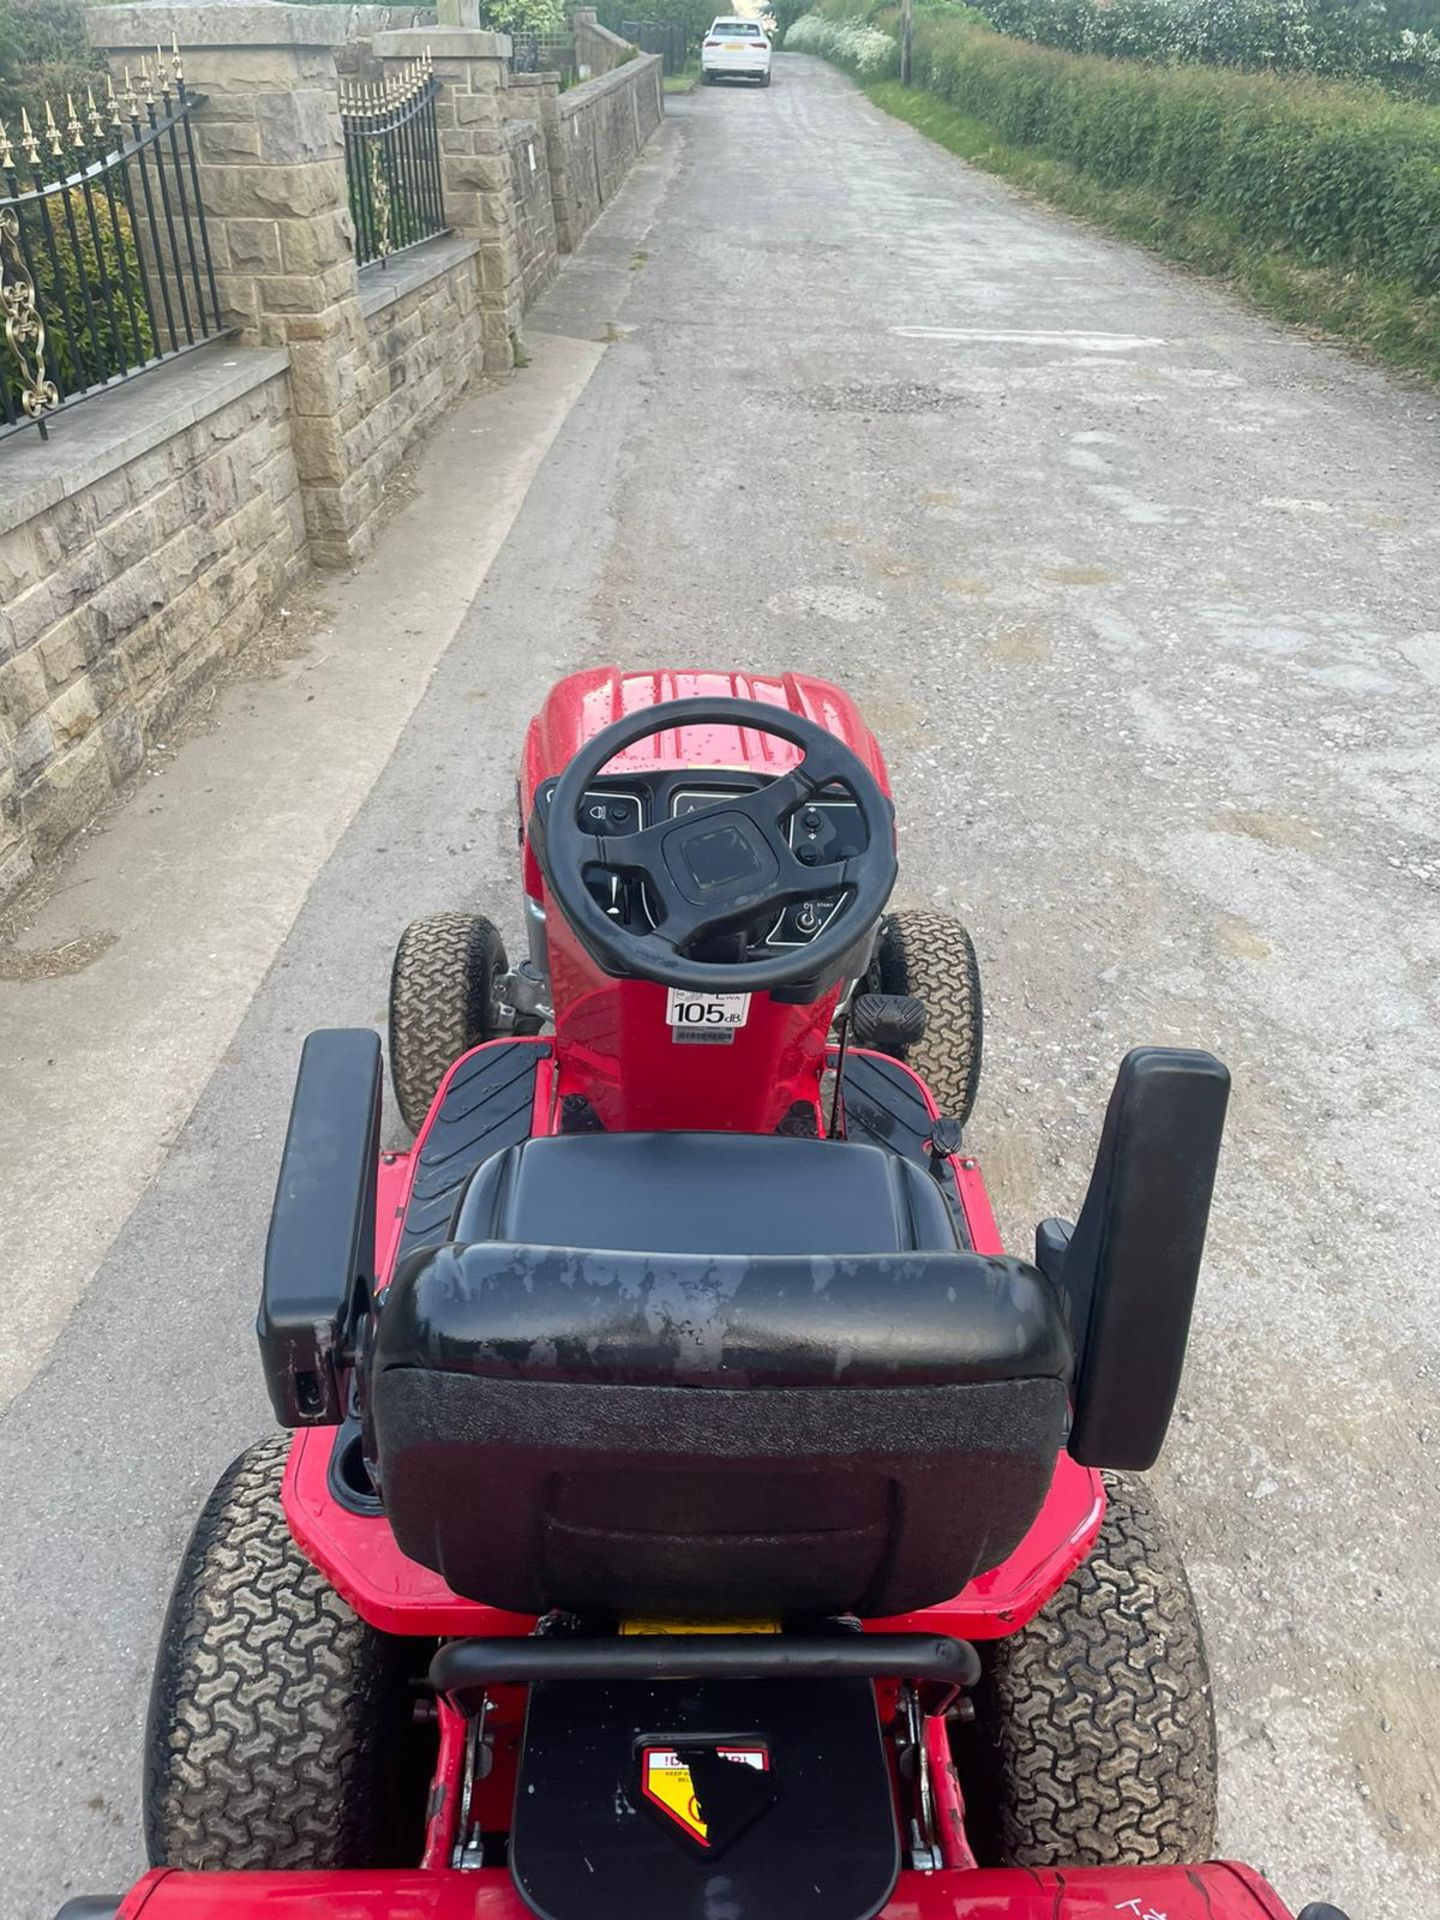 COUNTAX C25-4WD RIDE ON LAWN MOWER, RUNS AND WORKS, CUTS AND COLLECTS *NO VAT* - Image 4 of 7